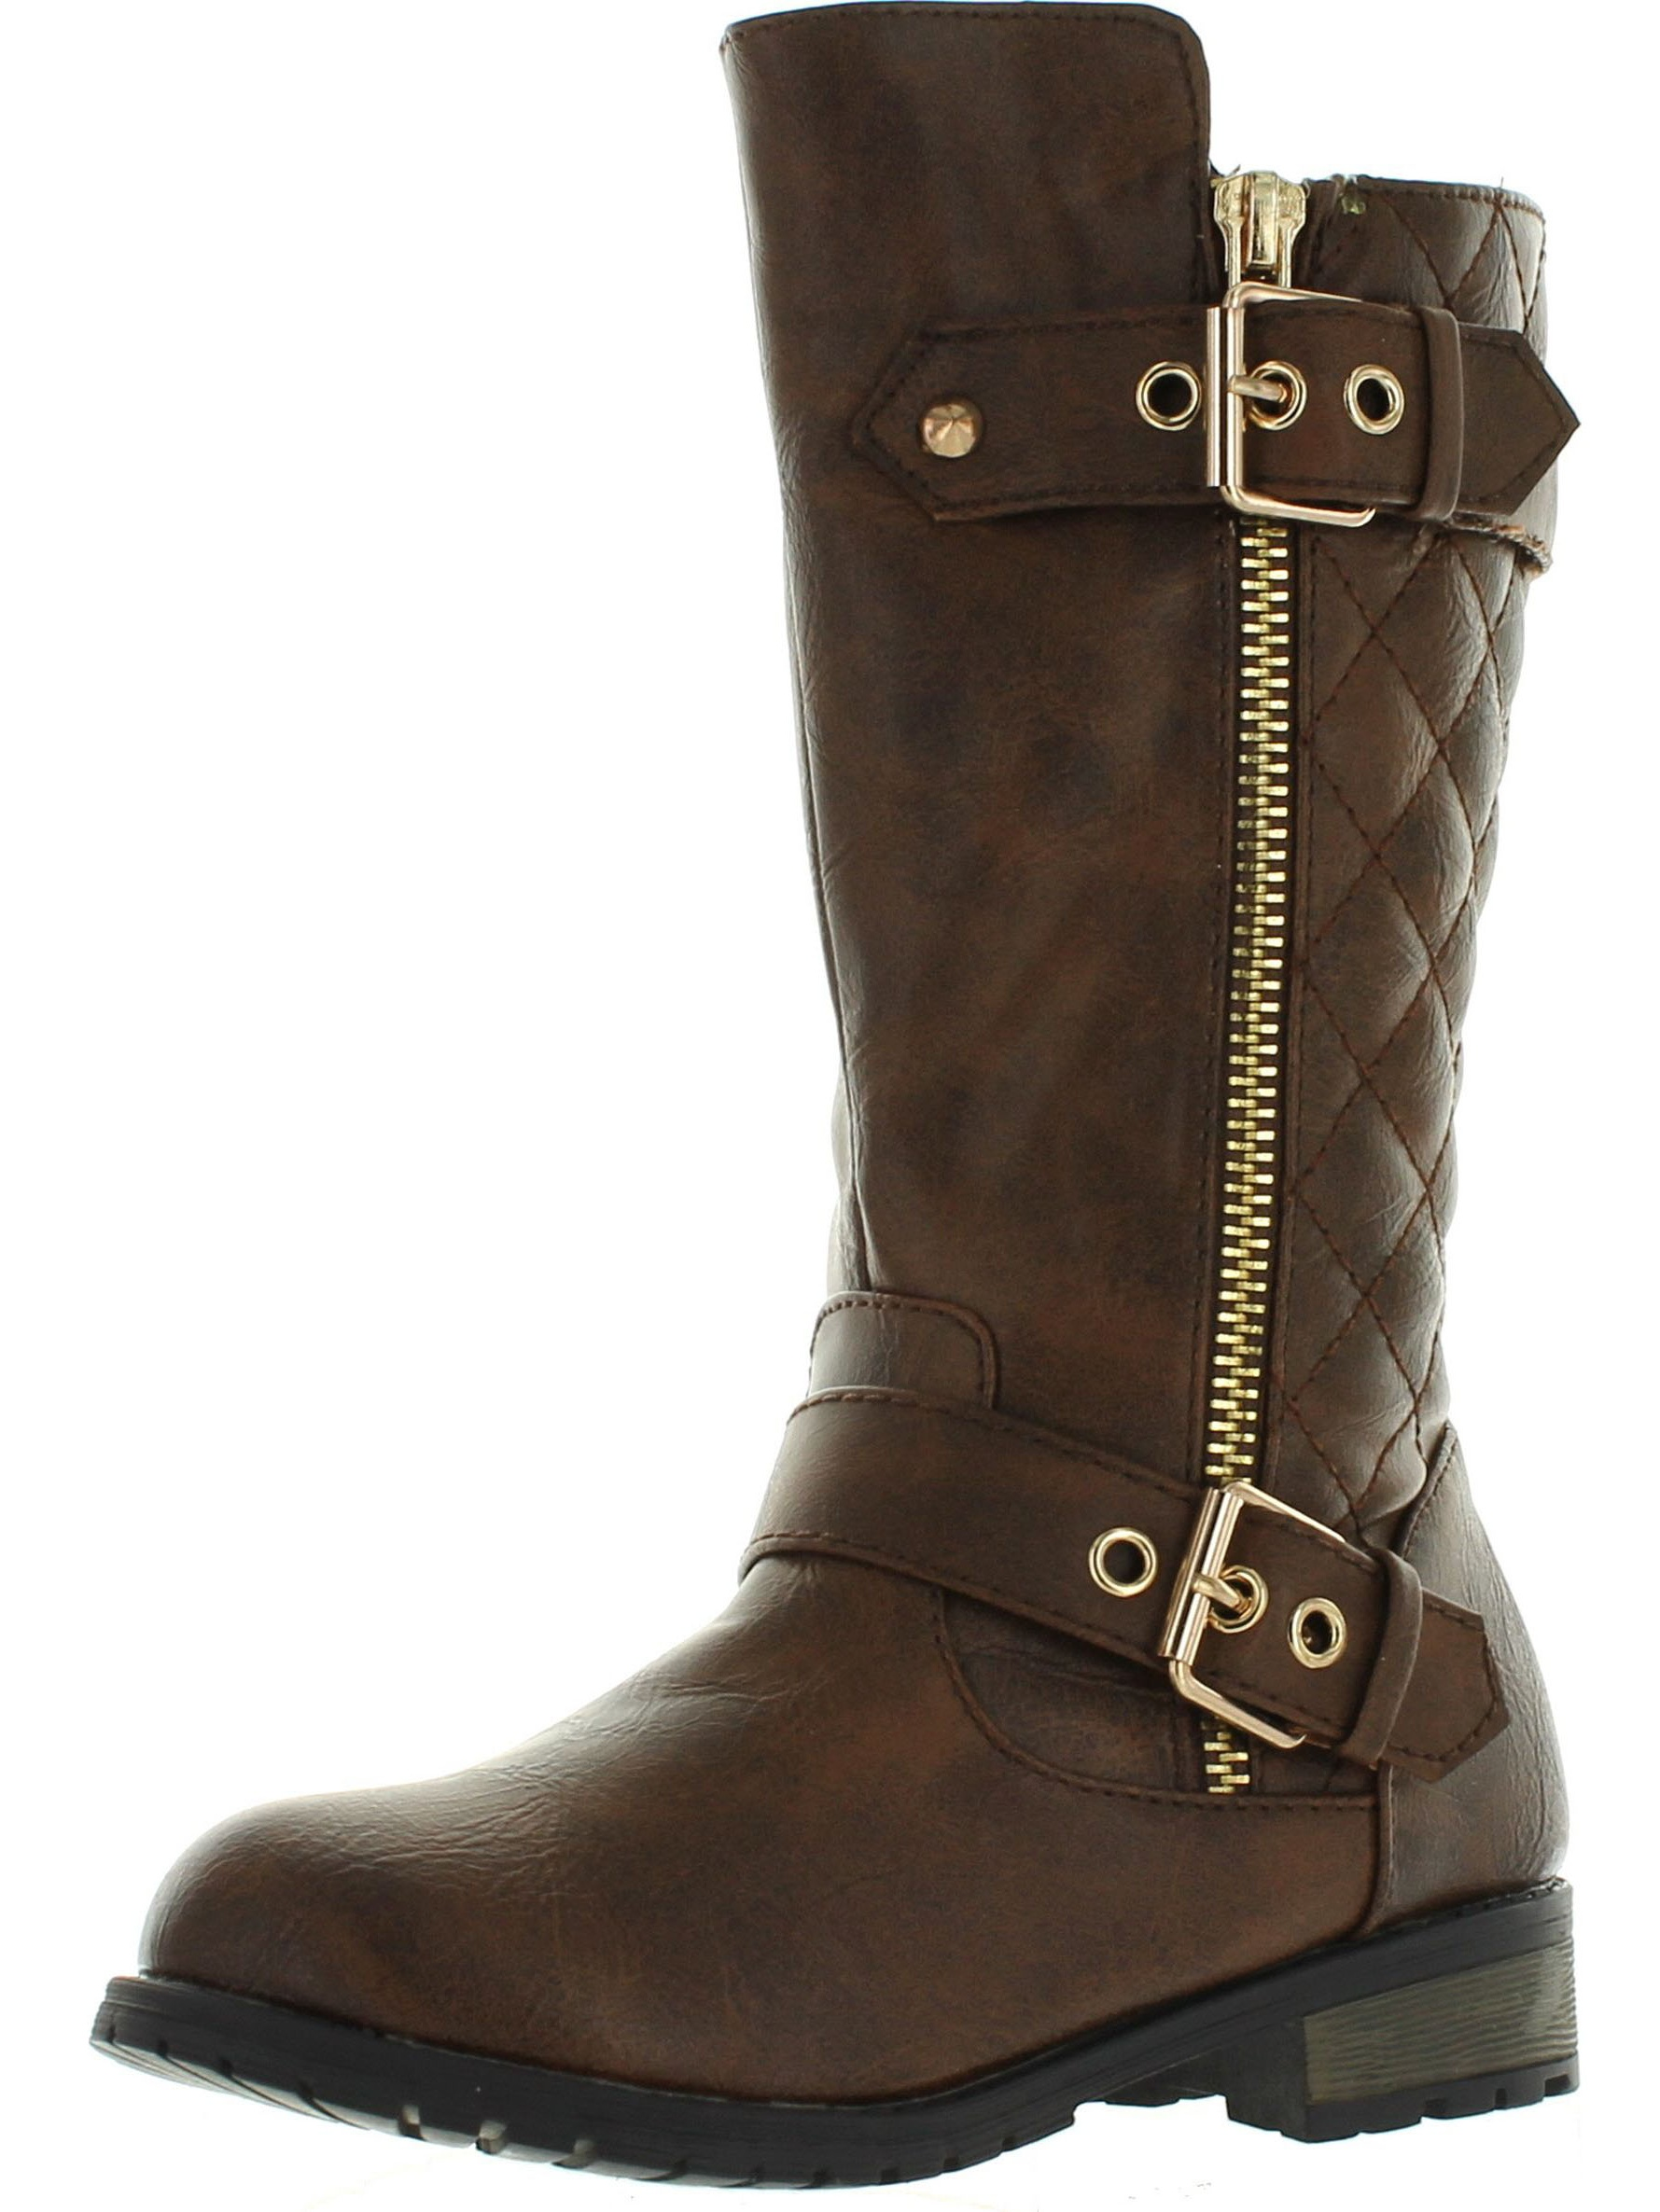 Girls Boots & Booties - Walmart.com